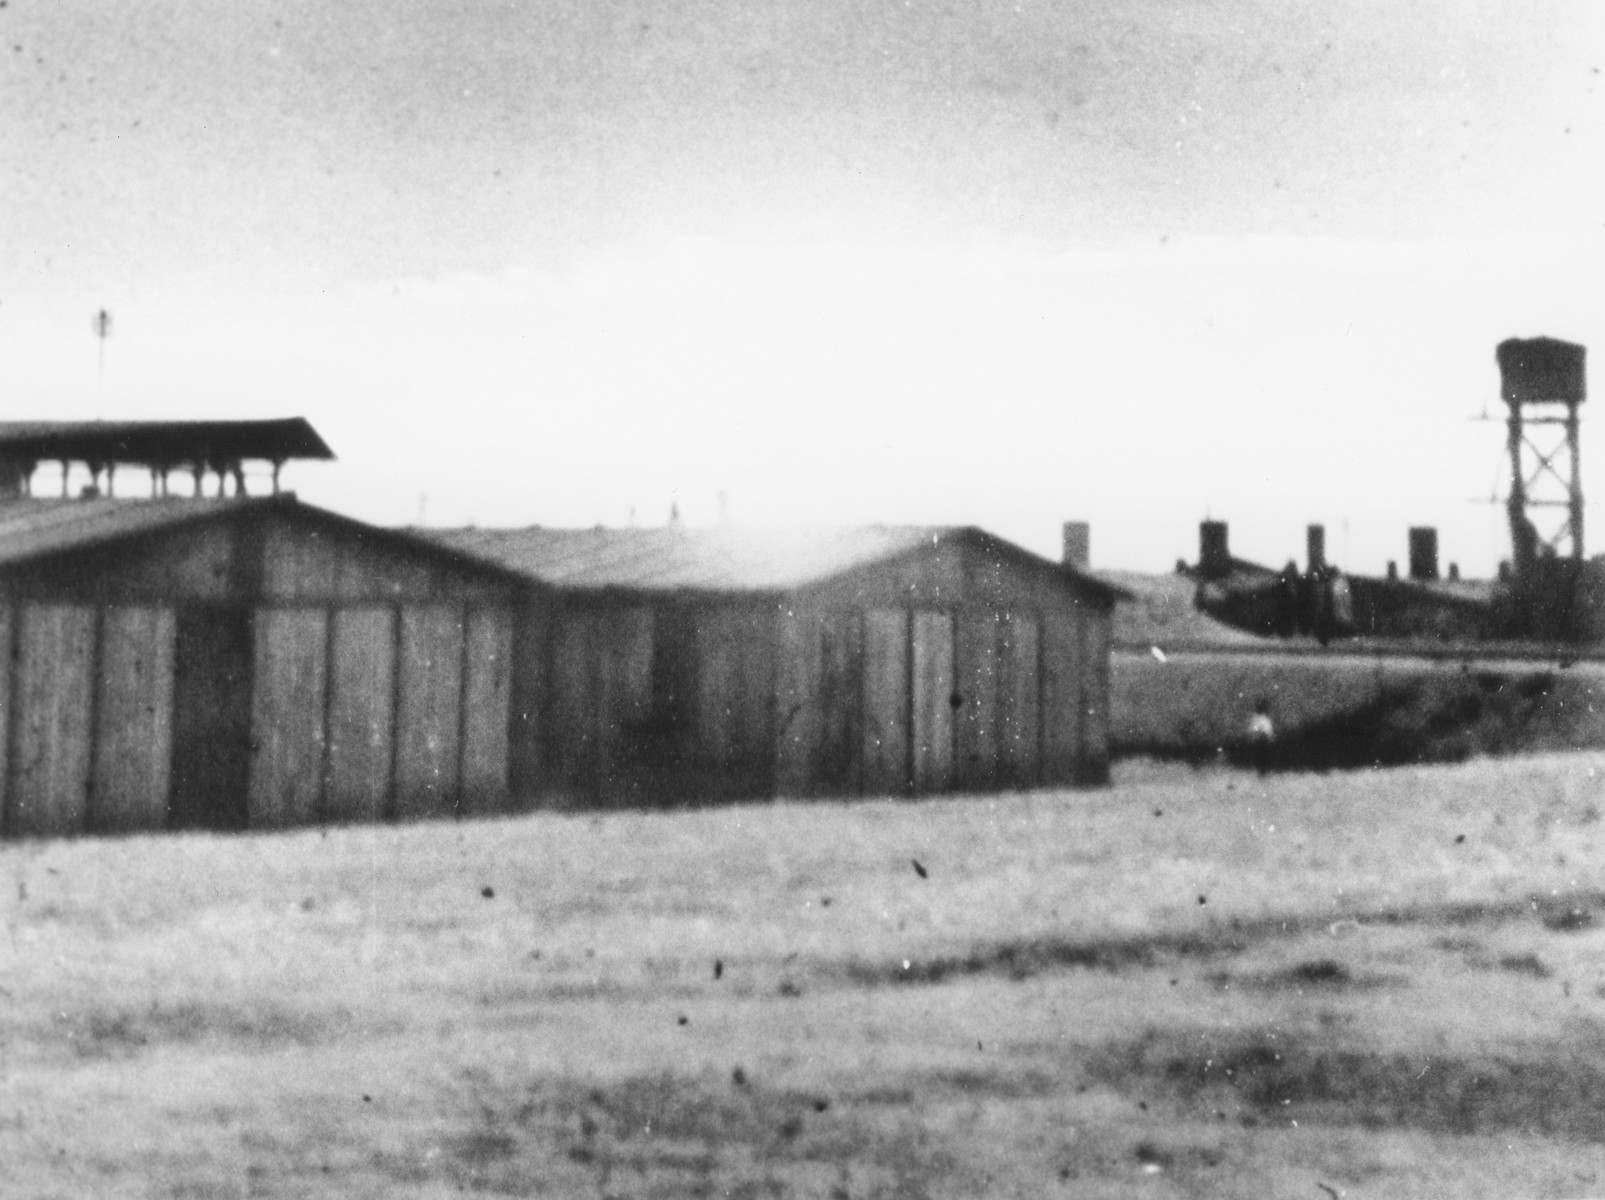 View of the Trawniki training camp showing two barracks and a watch tower.